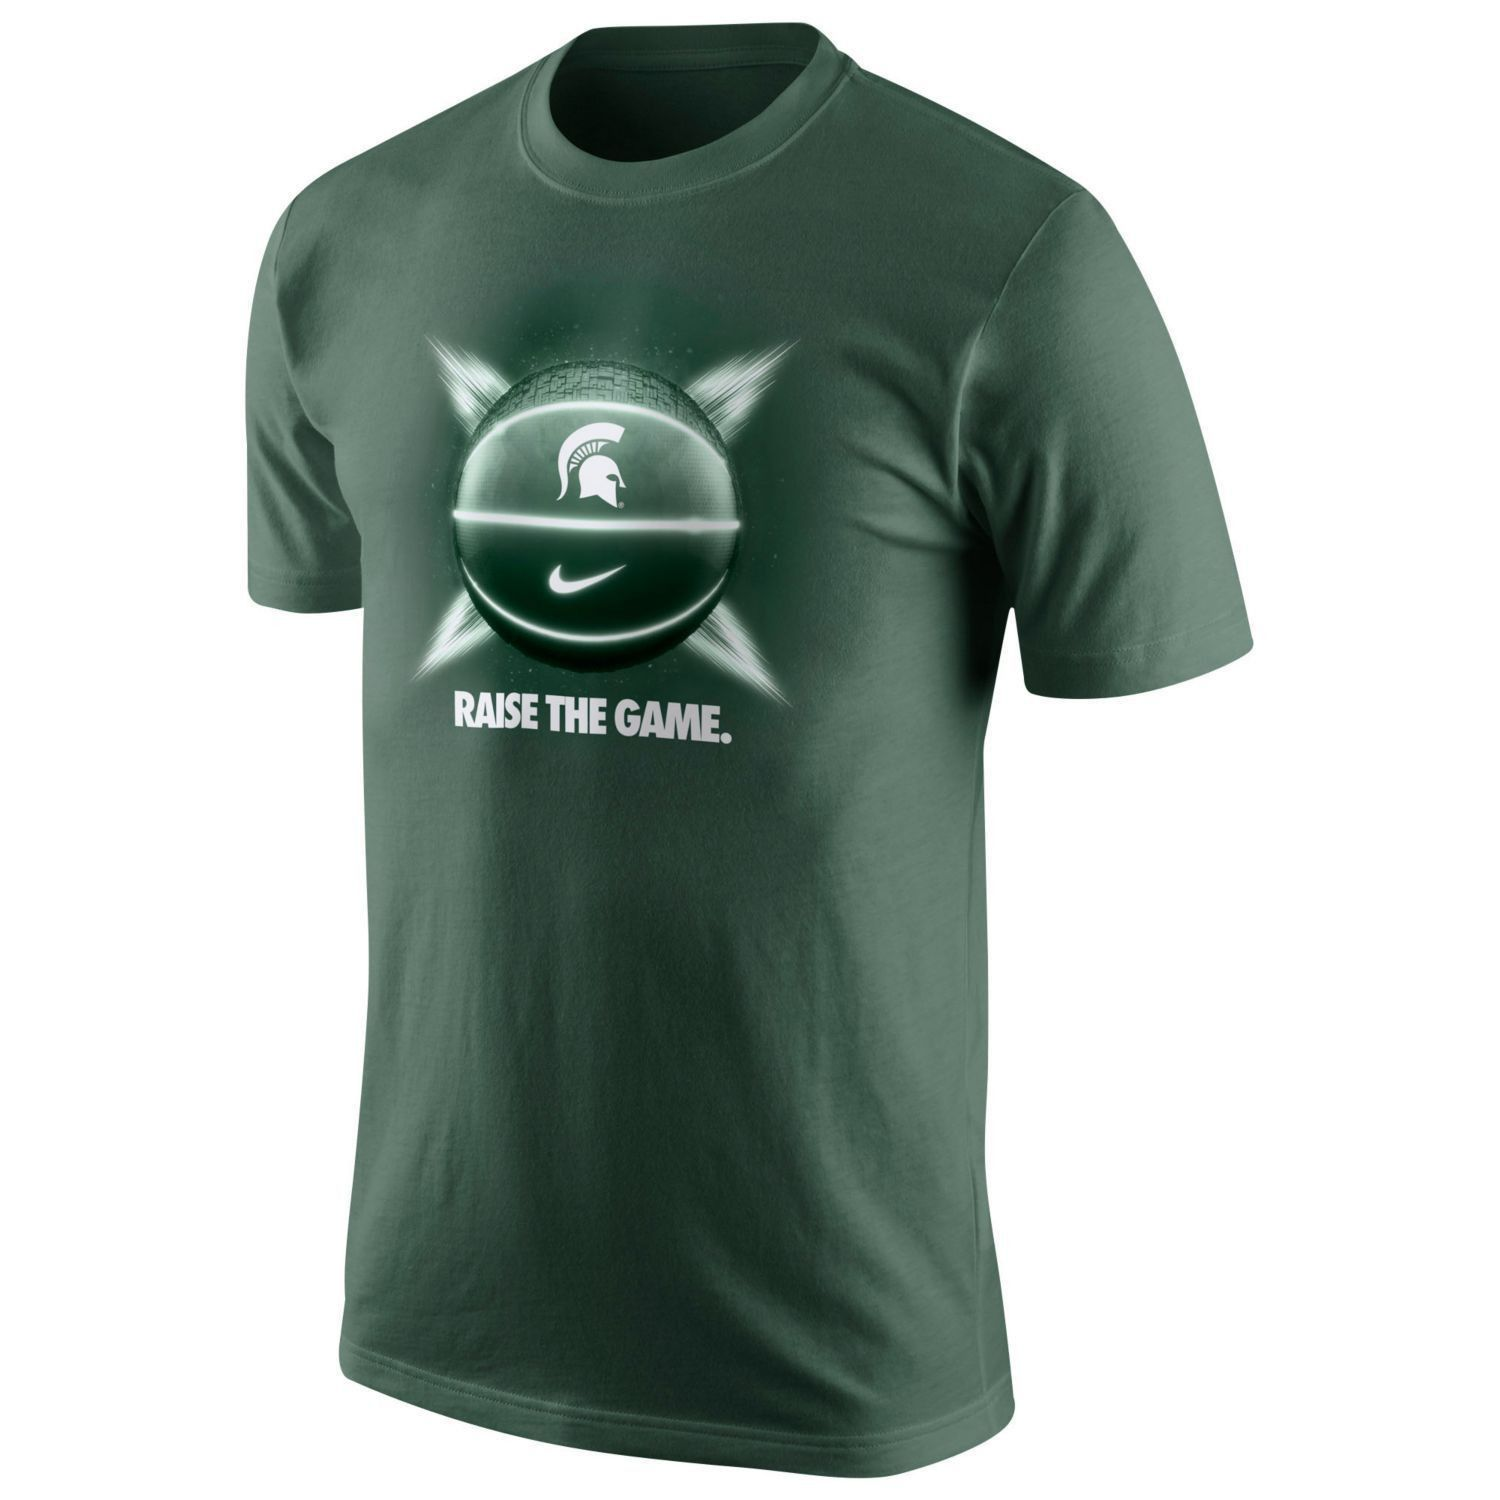 Michigan State Spartans Raise the Game Nike Dri Fit t-shirt NWT Sparty MSU